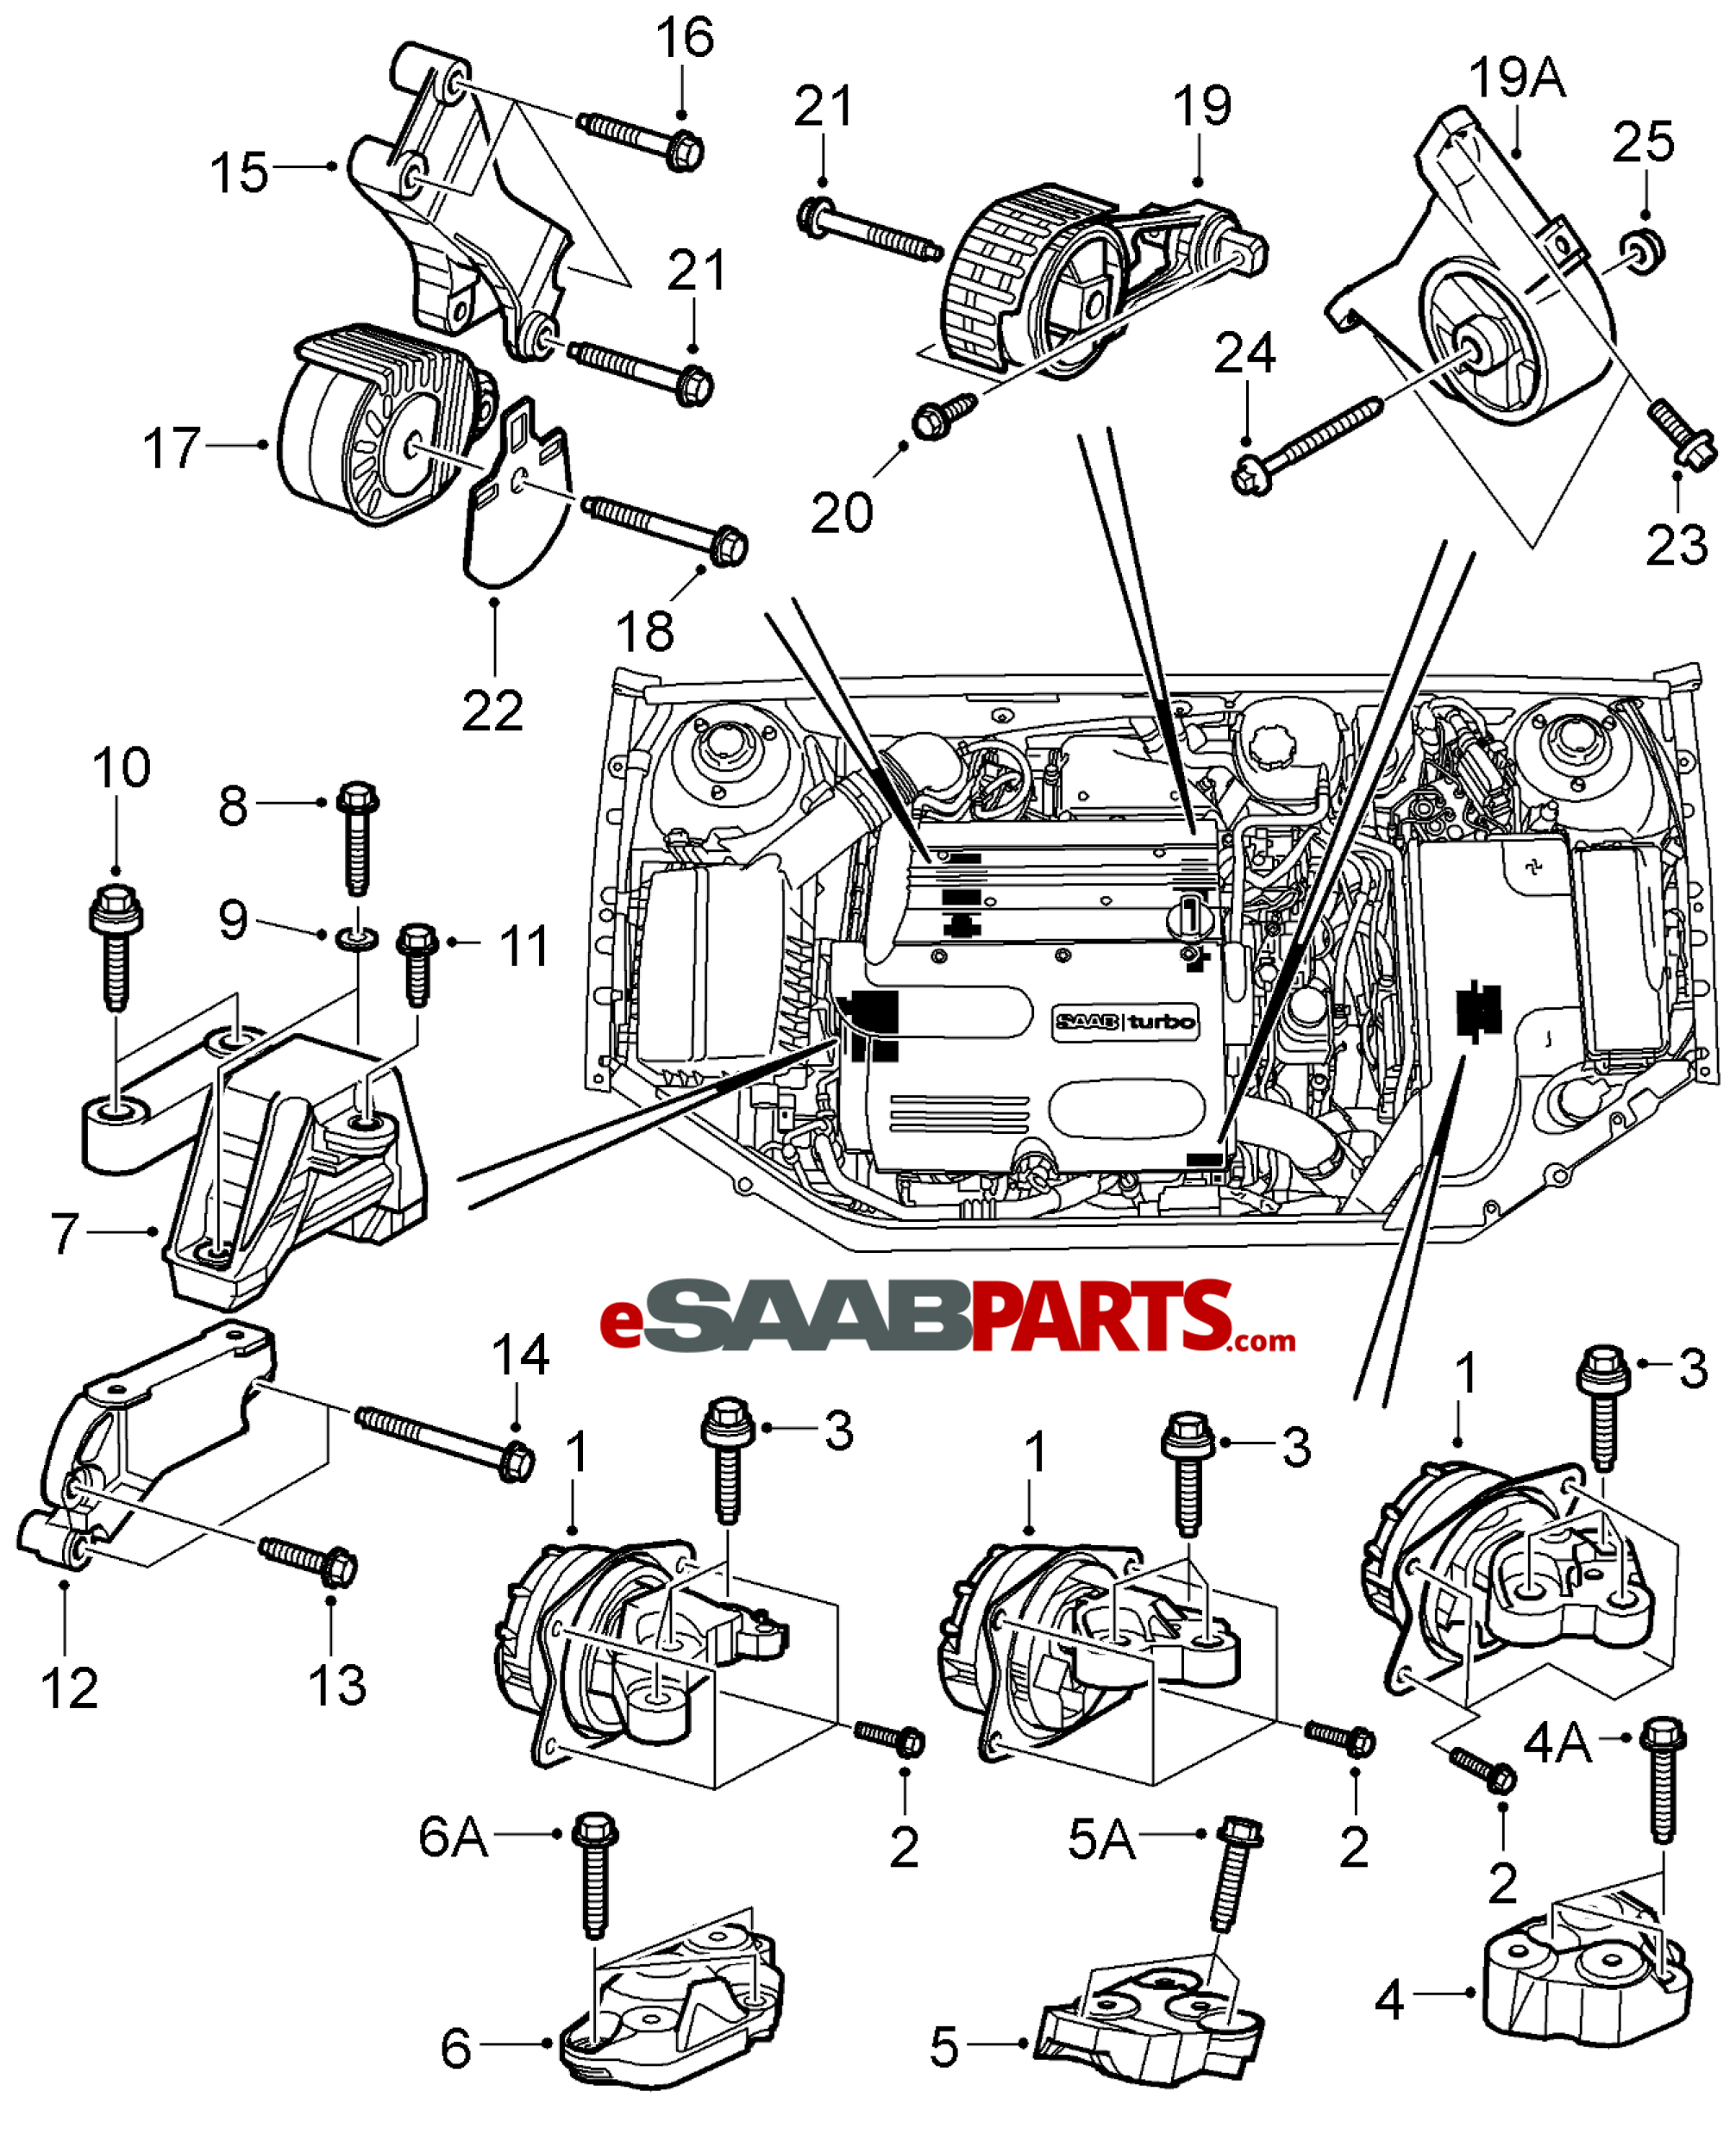 saab engine mounts diagram wiring library u2022 rh lahood co saab 900 turbo engine diagram 1996 Saab 900 Door Diagrams